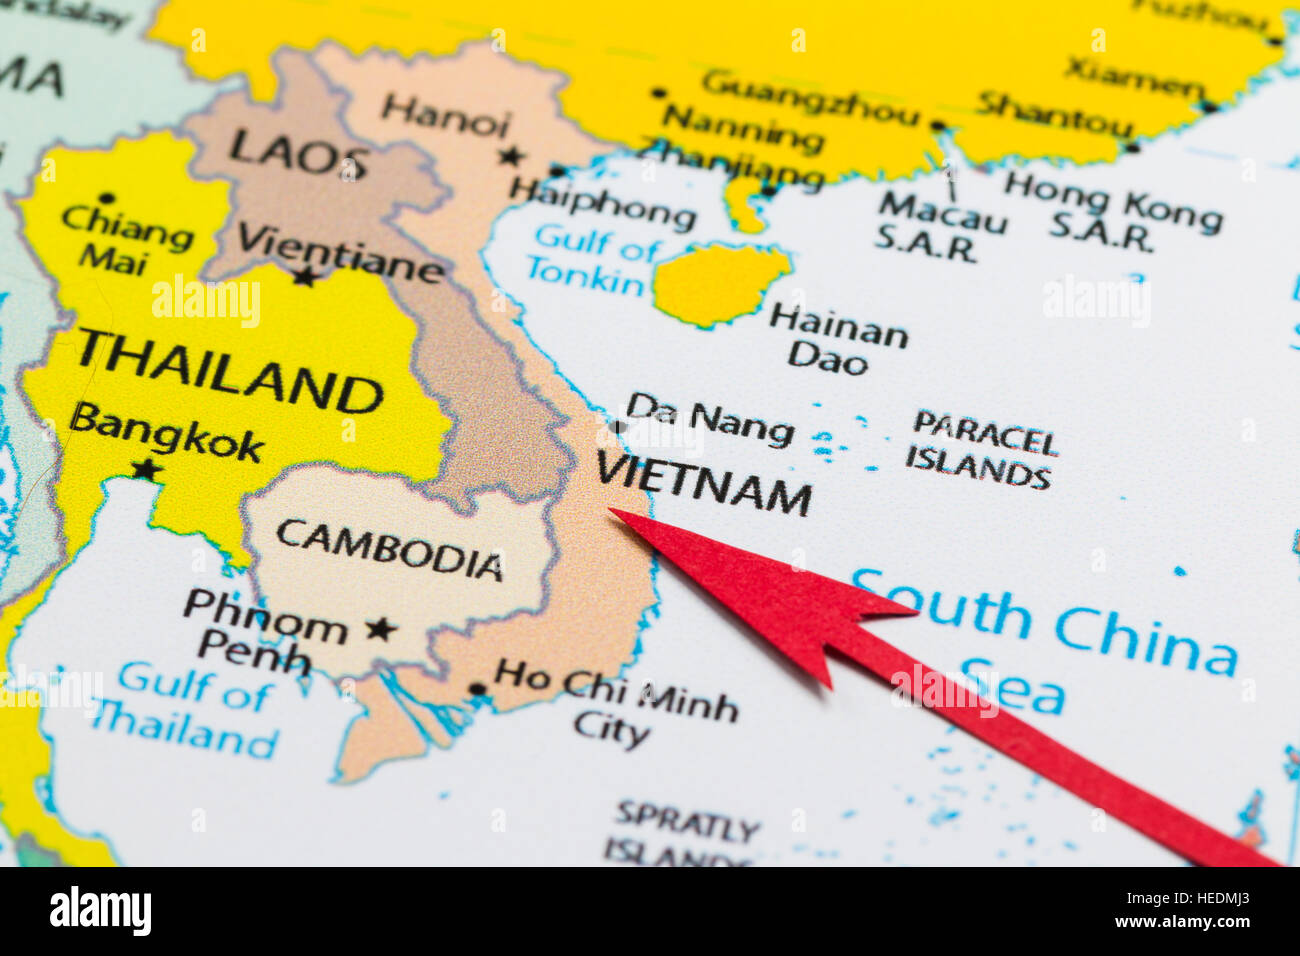 Map Of Asia Gulf Of Tonkin.Red Arrow Pointing Vietnam On The Map Of Asia Continent Stock Photo